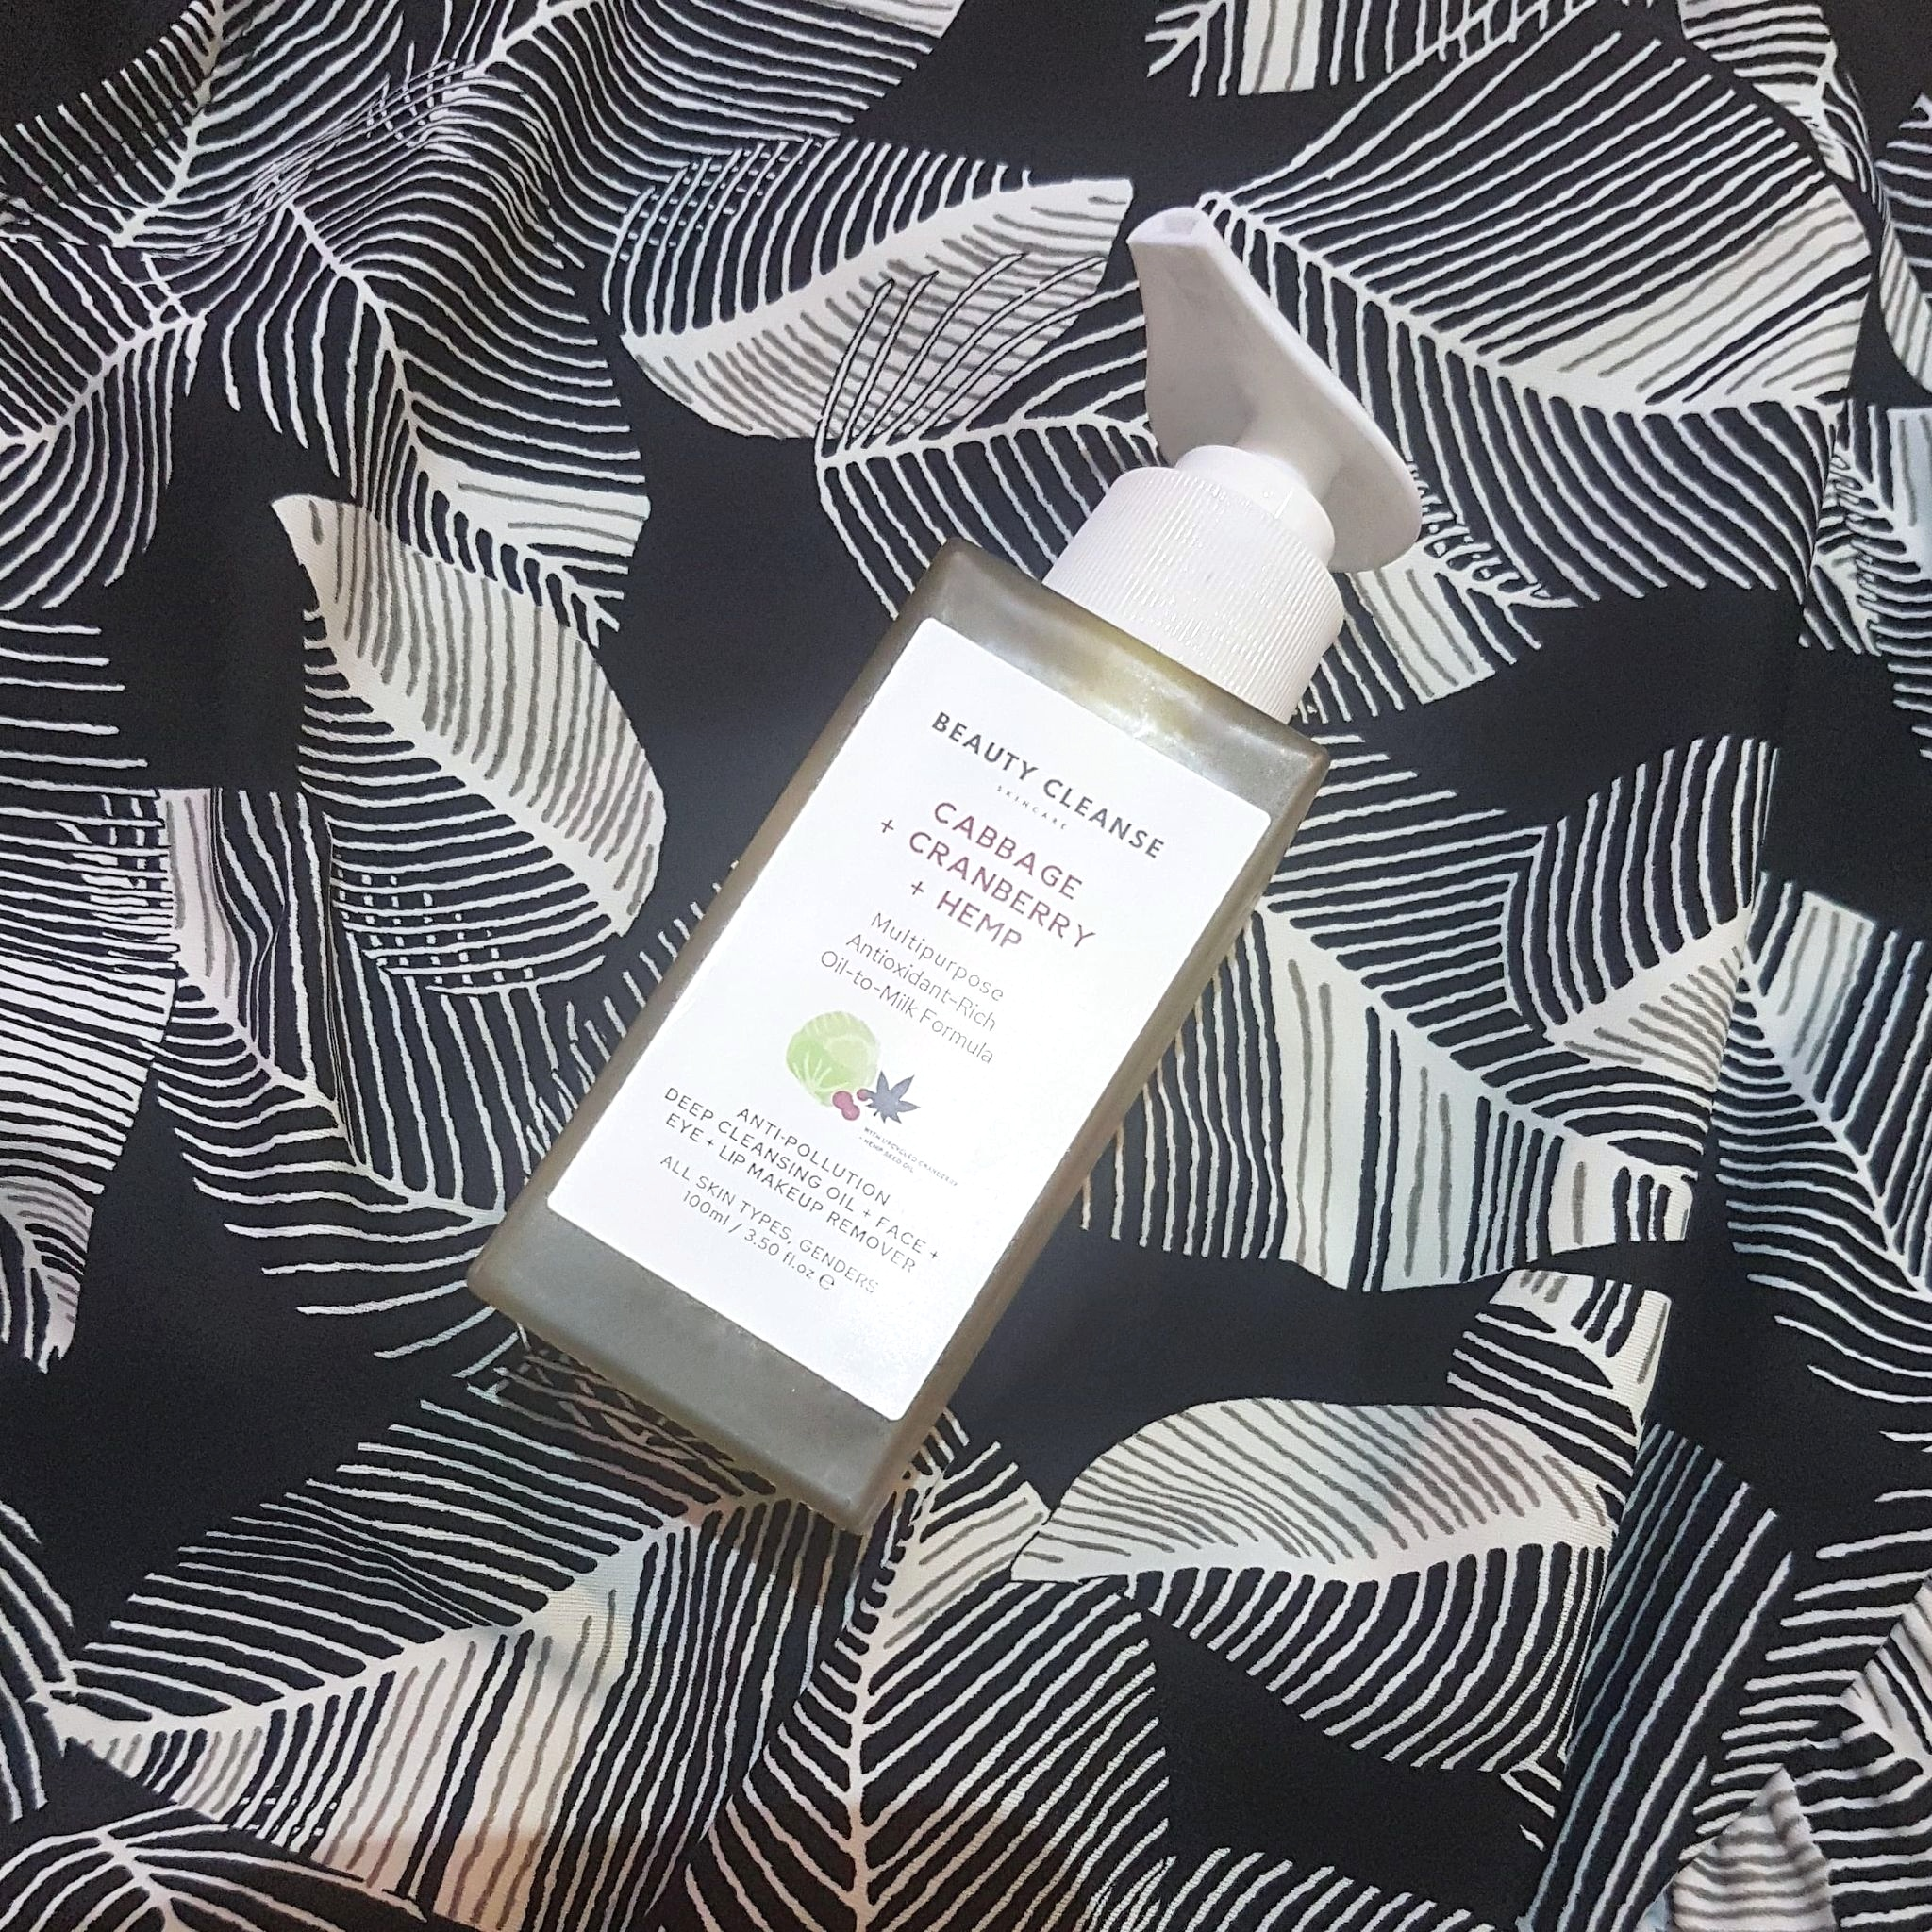 Beauty Cleanse Skincare Cleansing Oil Makeup Remover glass bottle lying down on black and white leaf print background